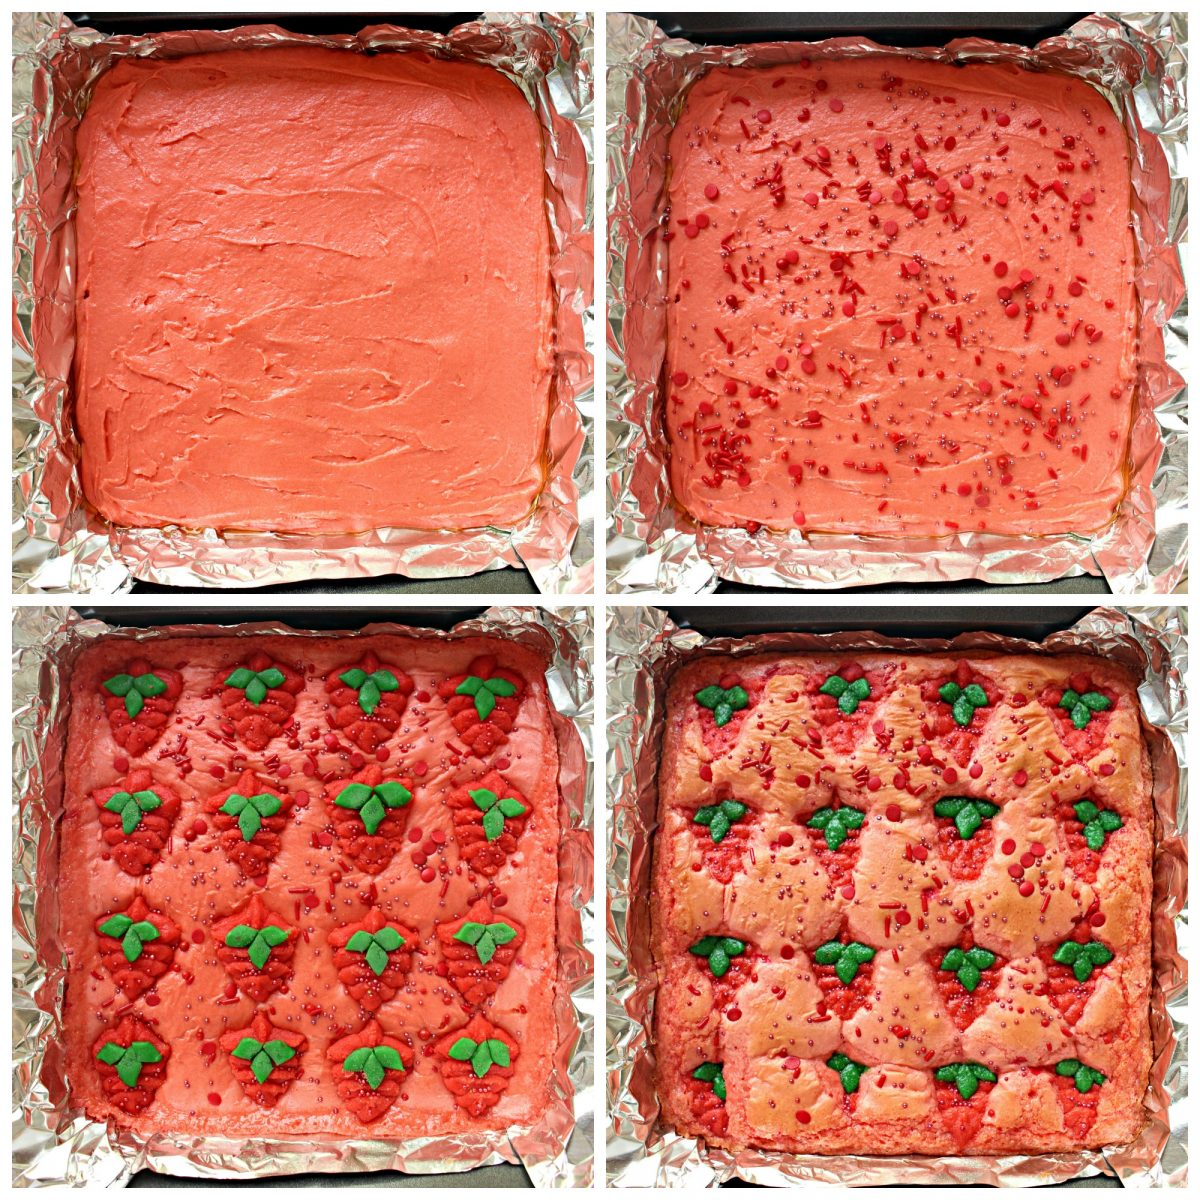 Process collage for decorating strawberry brownies: spread in pan, add sprinkles, add strawberry cookies, bake.